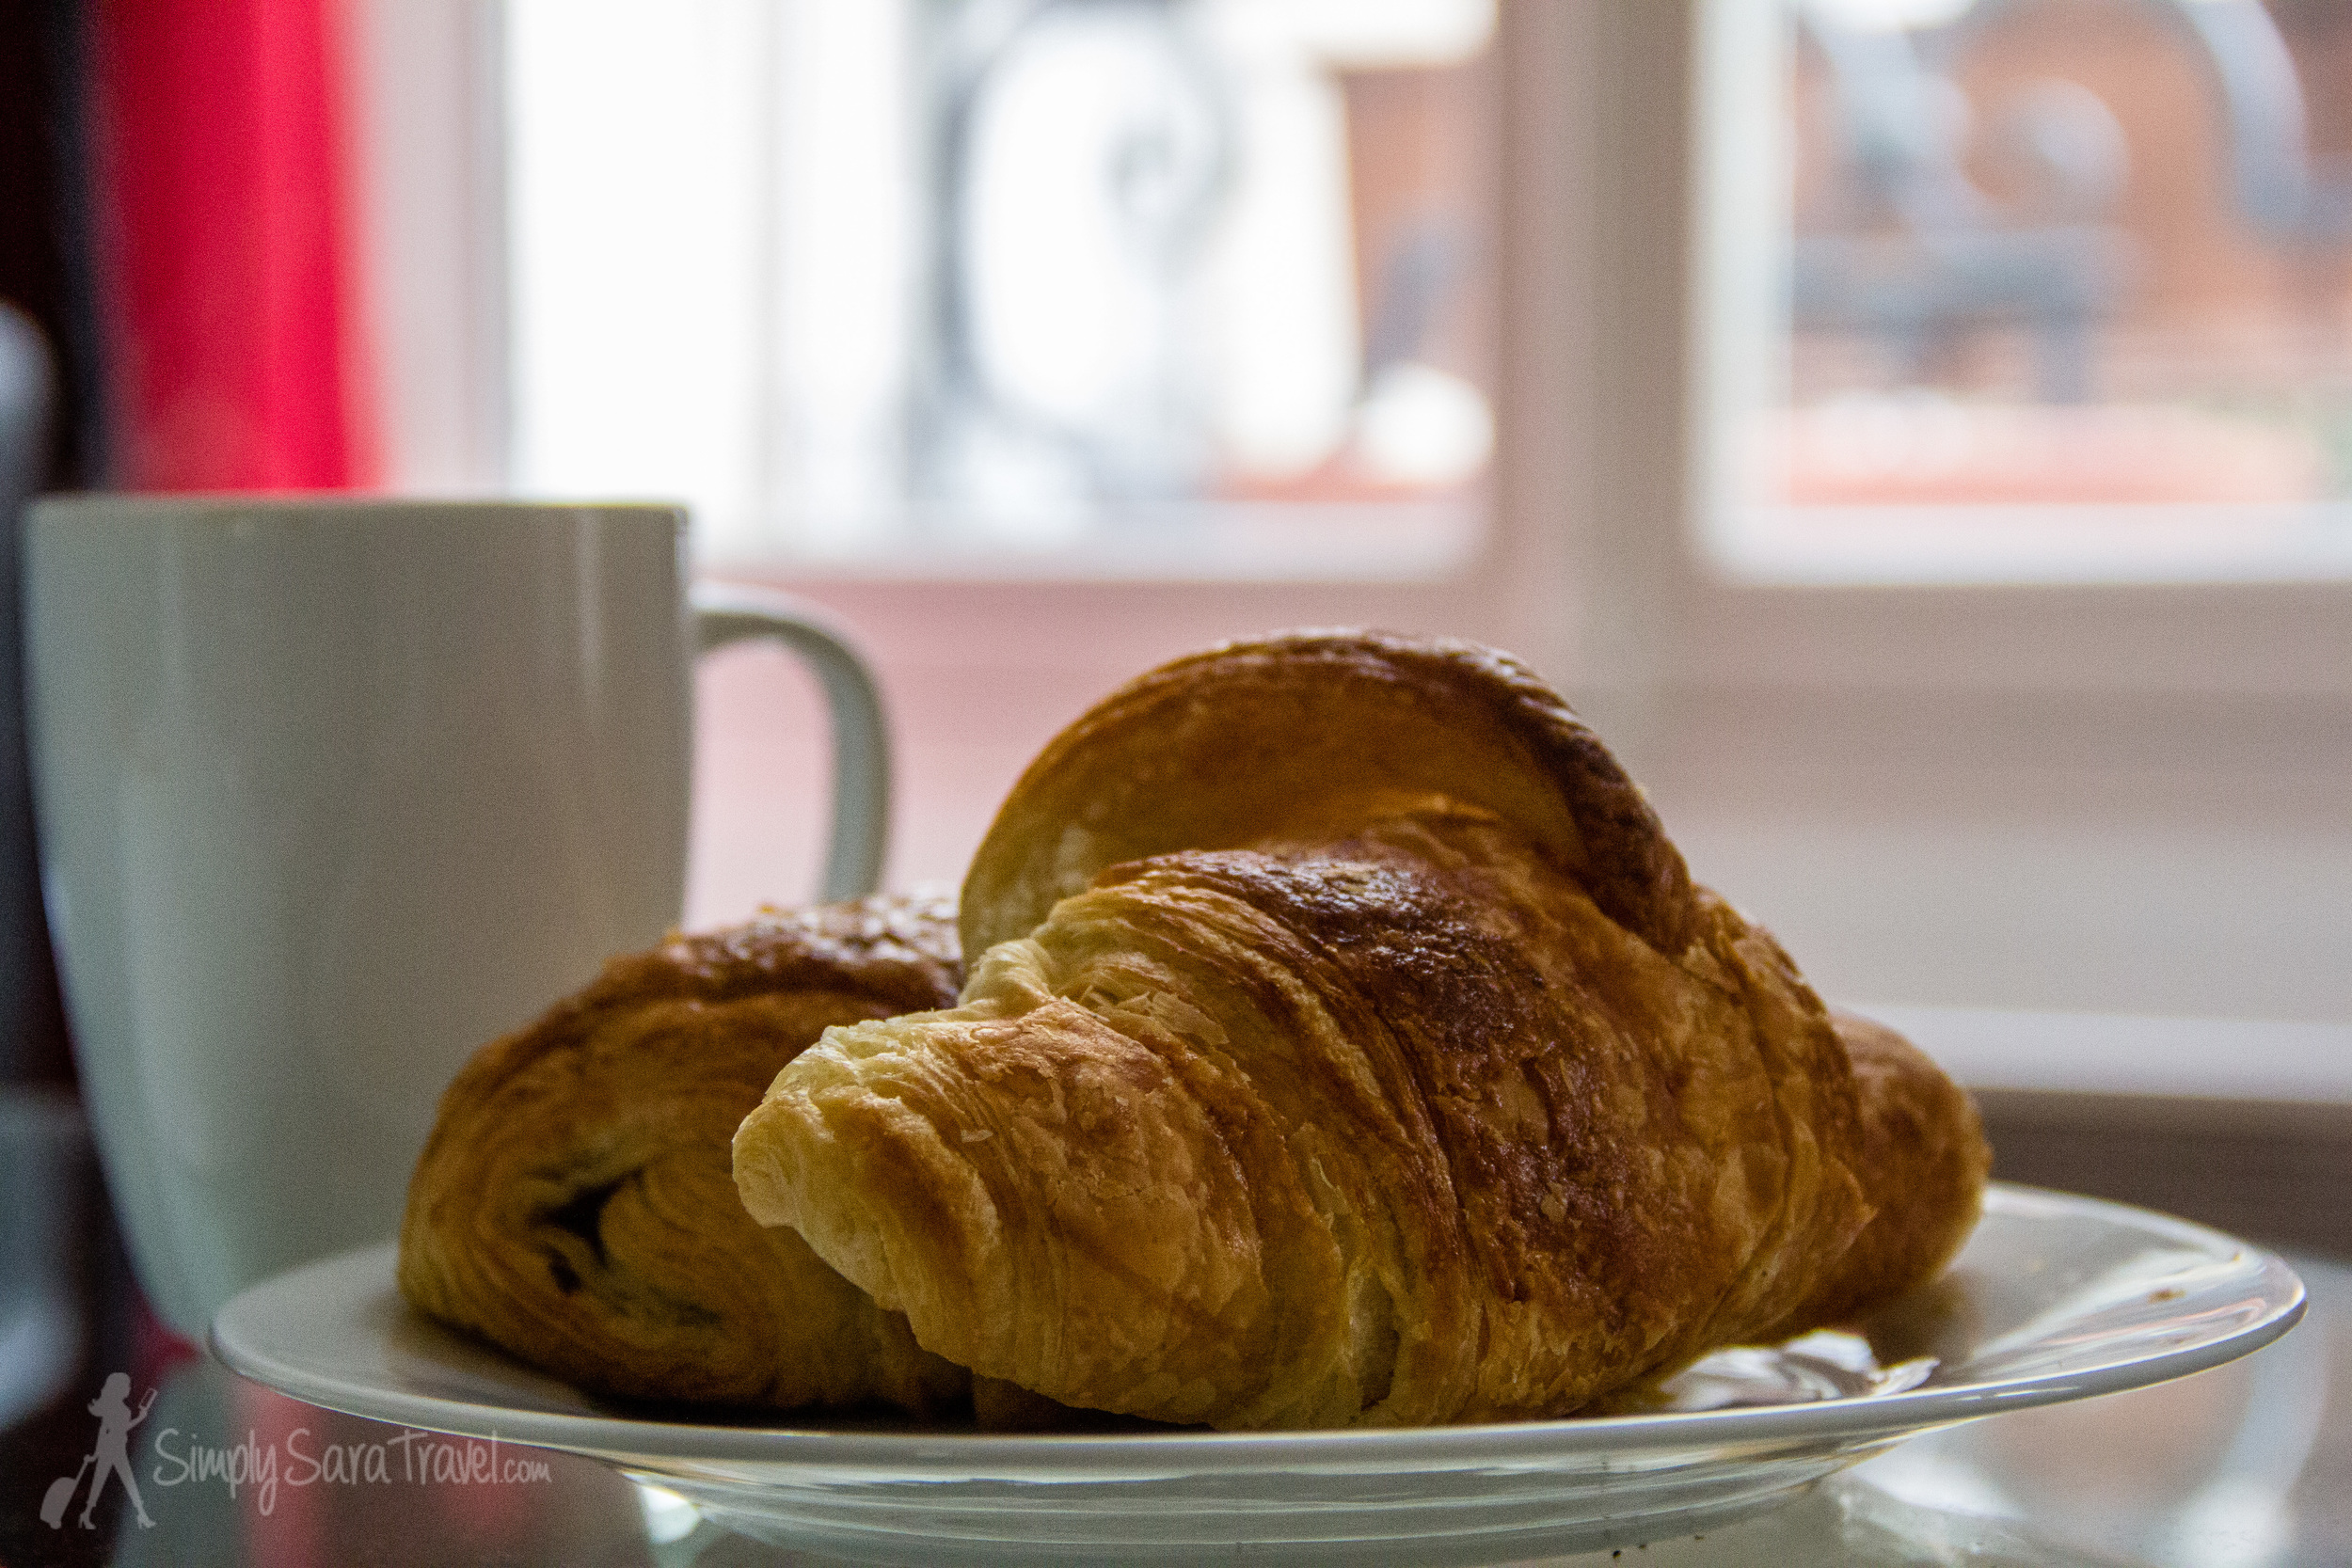 There's nothing like a French croissant, fresh out of the oven!